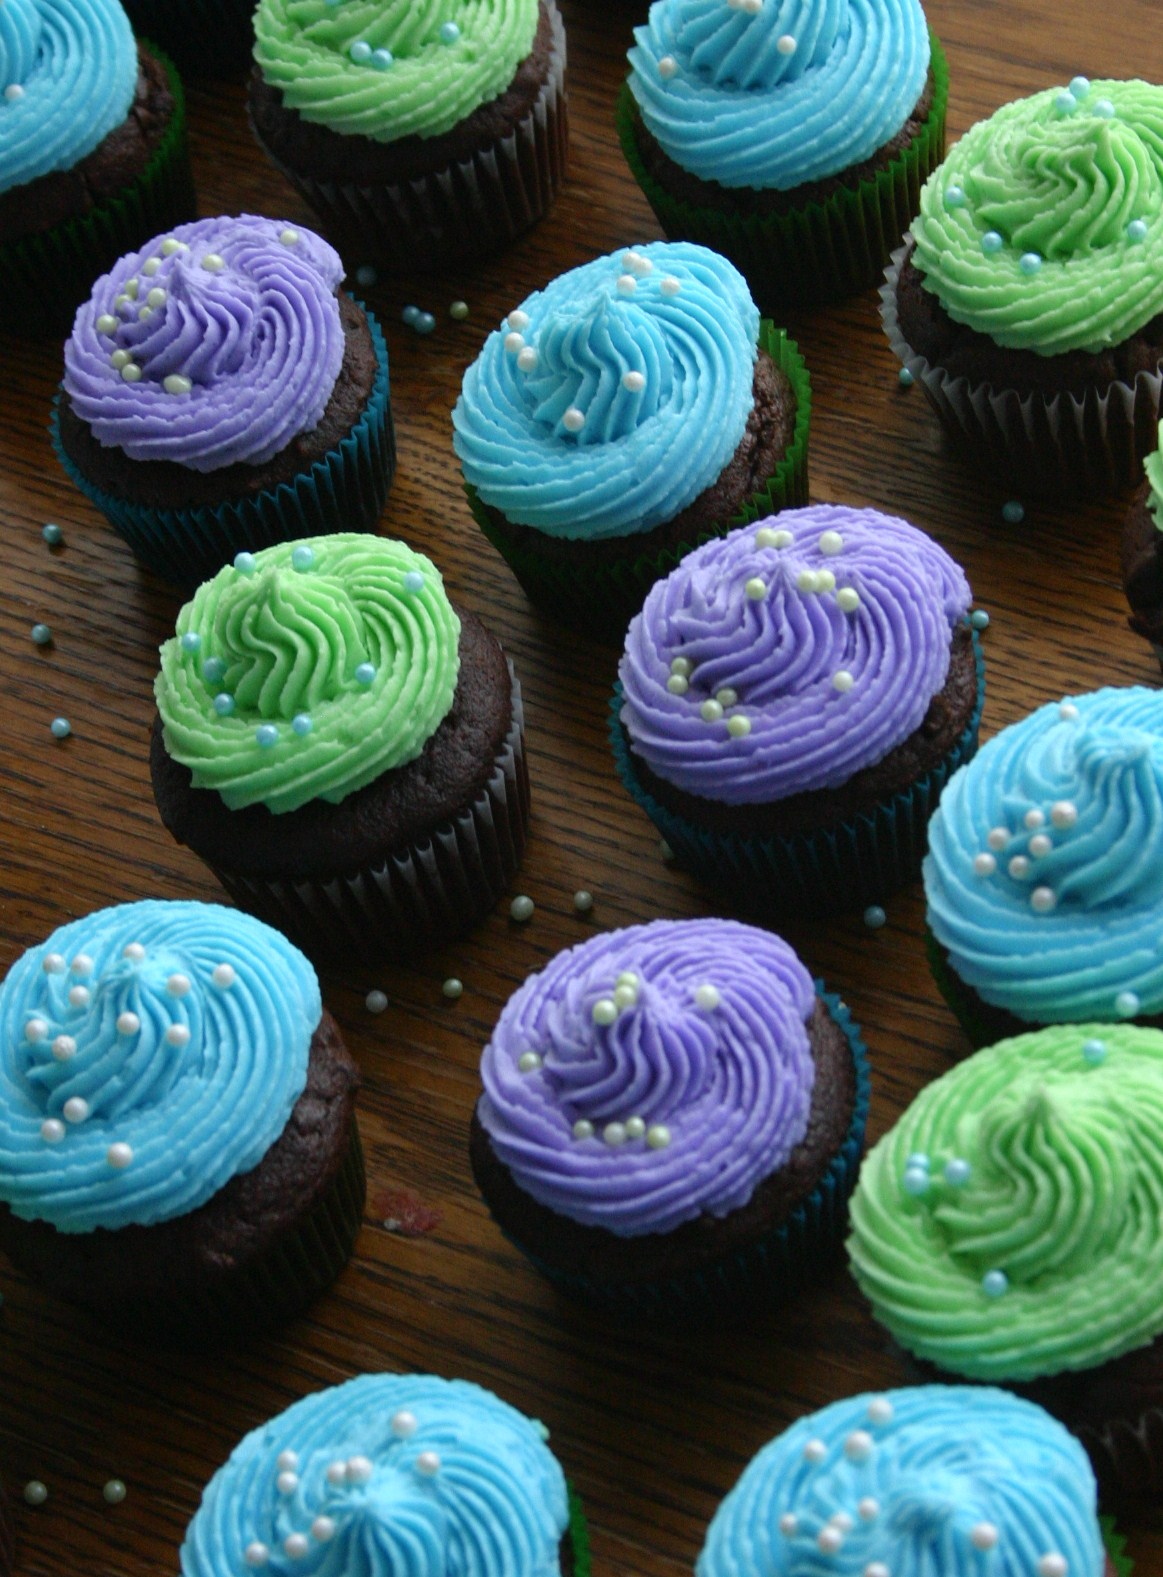 Purple blue and green cupcakes with white nonpareil